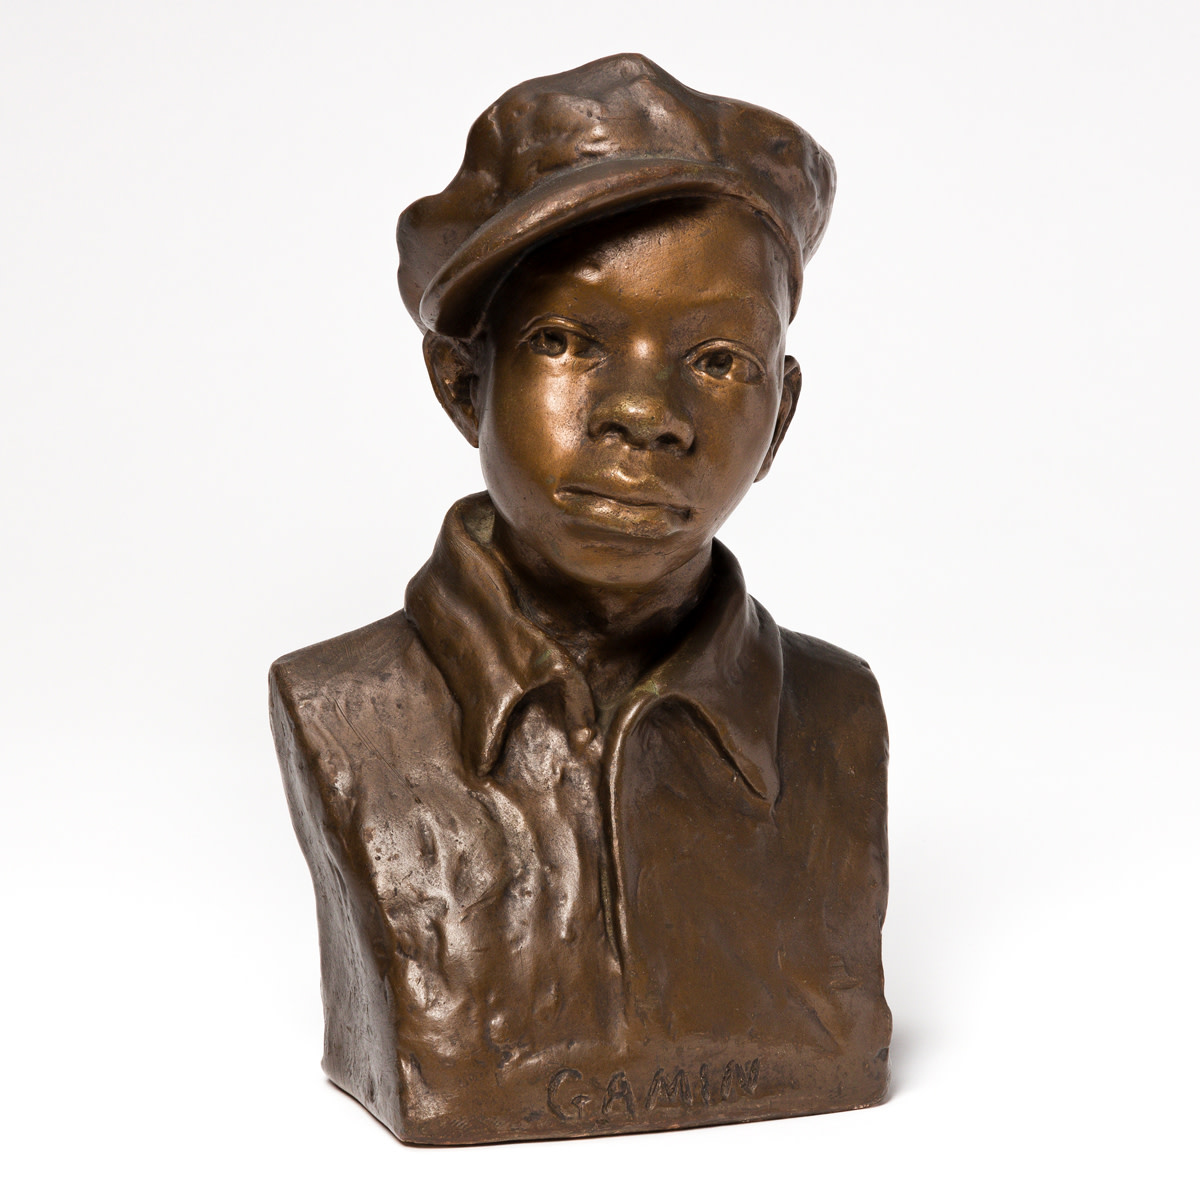 An iconic image of the Harlem Renaissance, this Gamin recently set a personal auction record for Savage at Swann Auction Galleries, after reaching $112,000. Plaster painted gold and circa 1929, it was acquired directly from Savage in 1939 by the seller's mother-in-law.